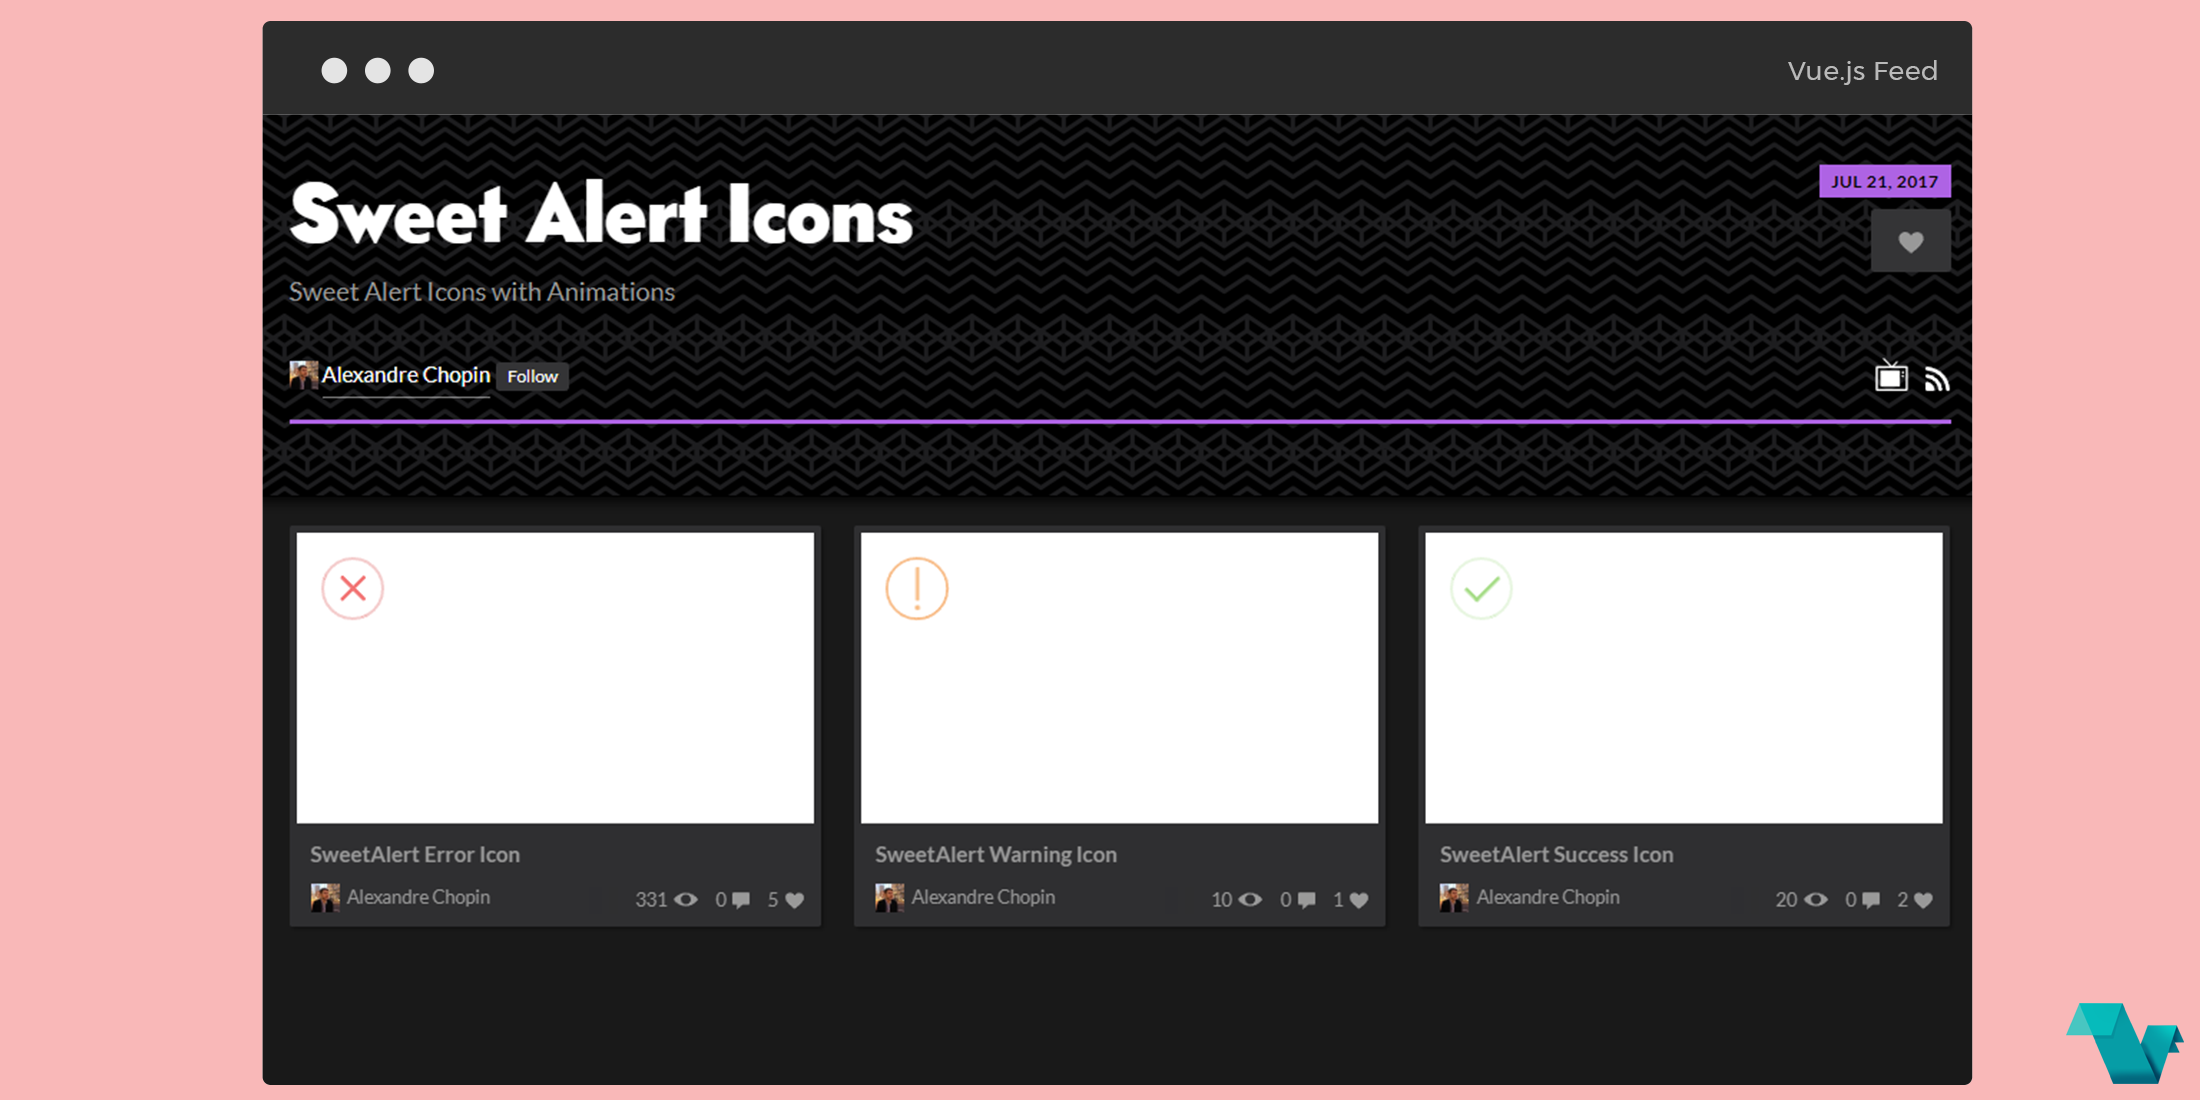 CodePen collection: SweetAlert Icons with animations - Vue js Feed